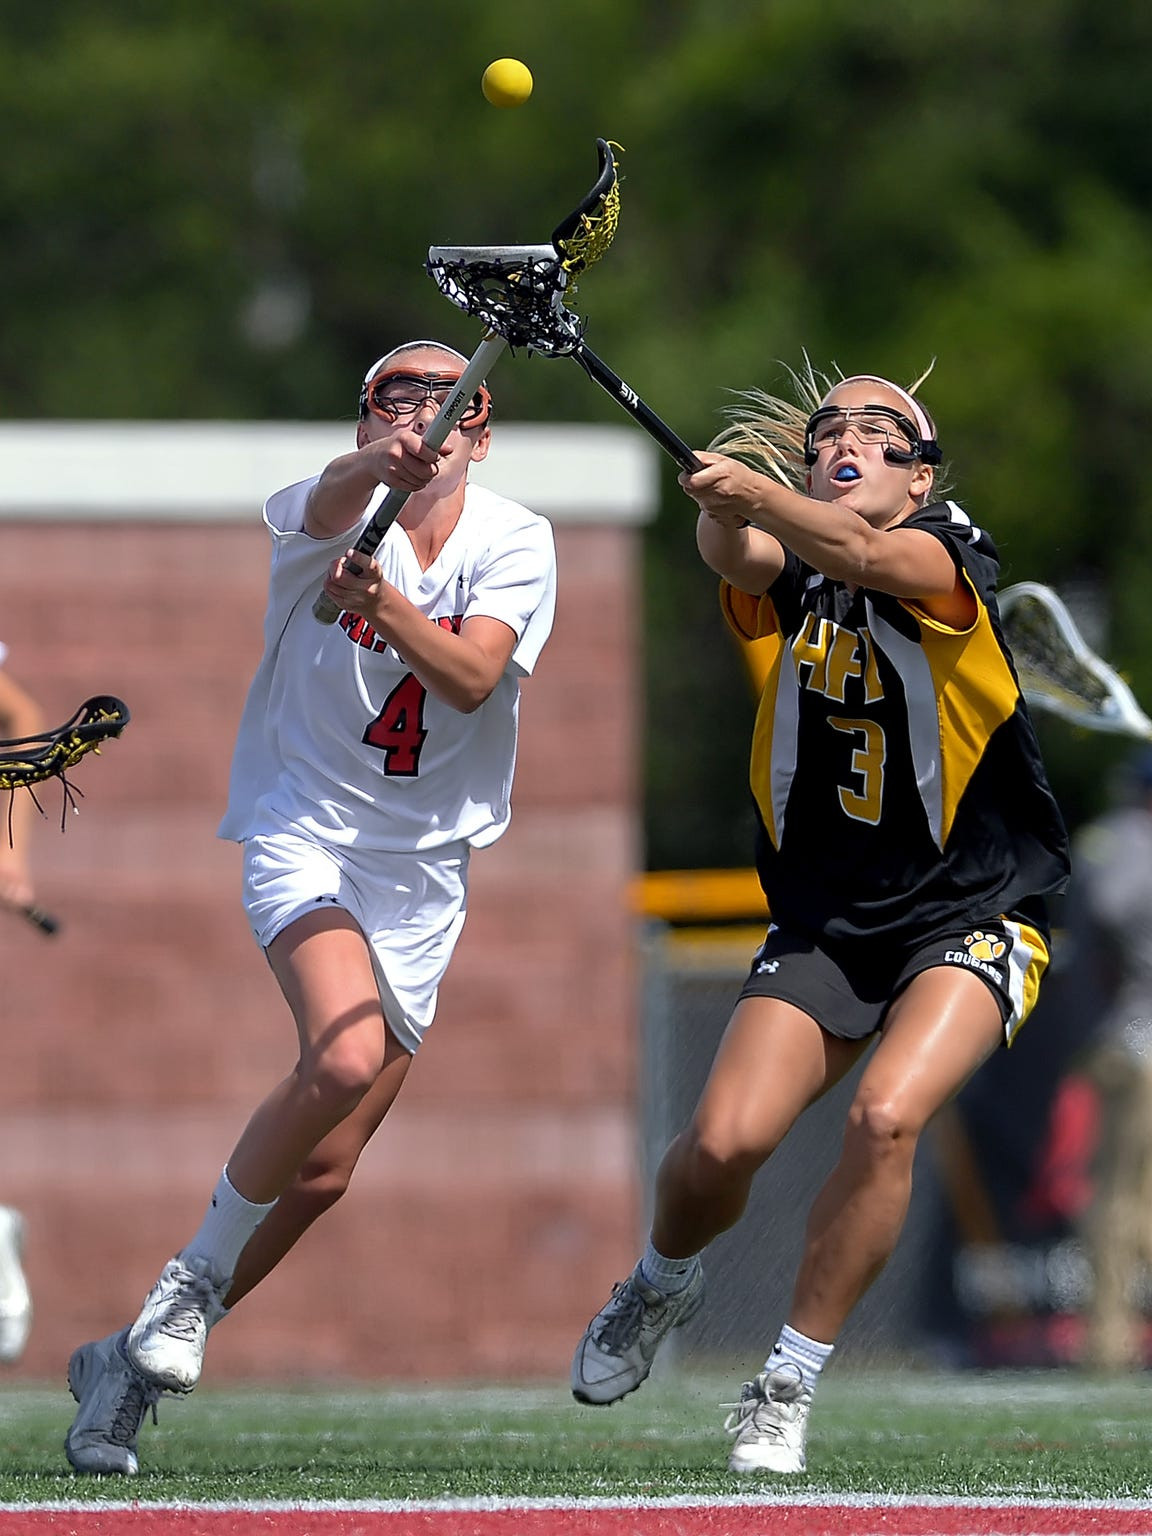 Mount Sinai's Emma Tyrrell, left, and HF-L's Caitlin